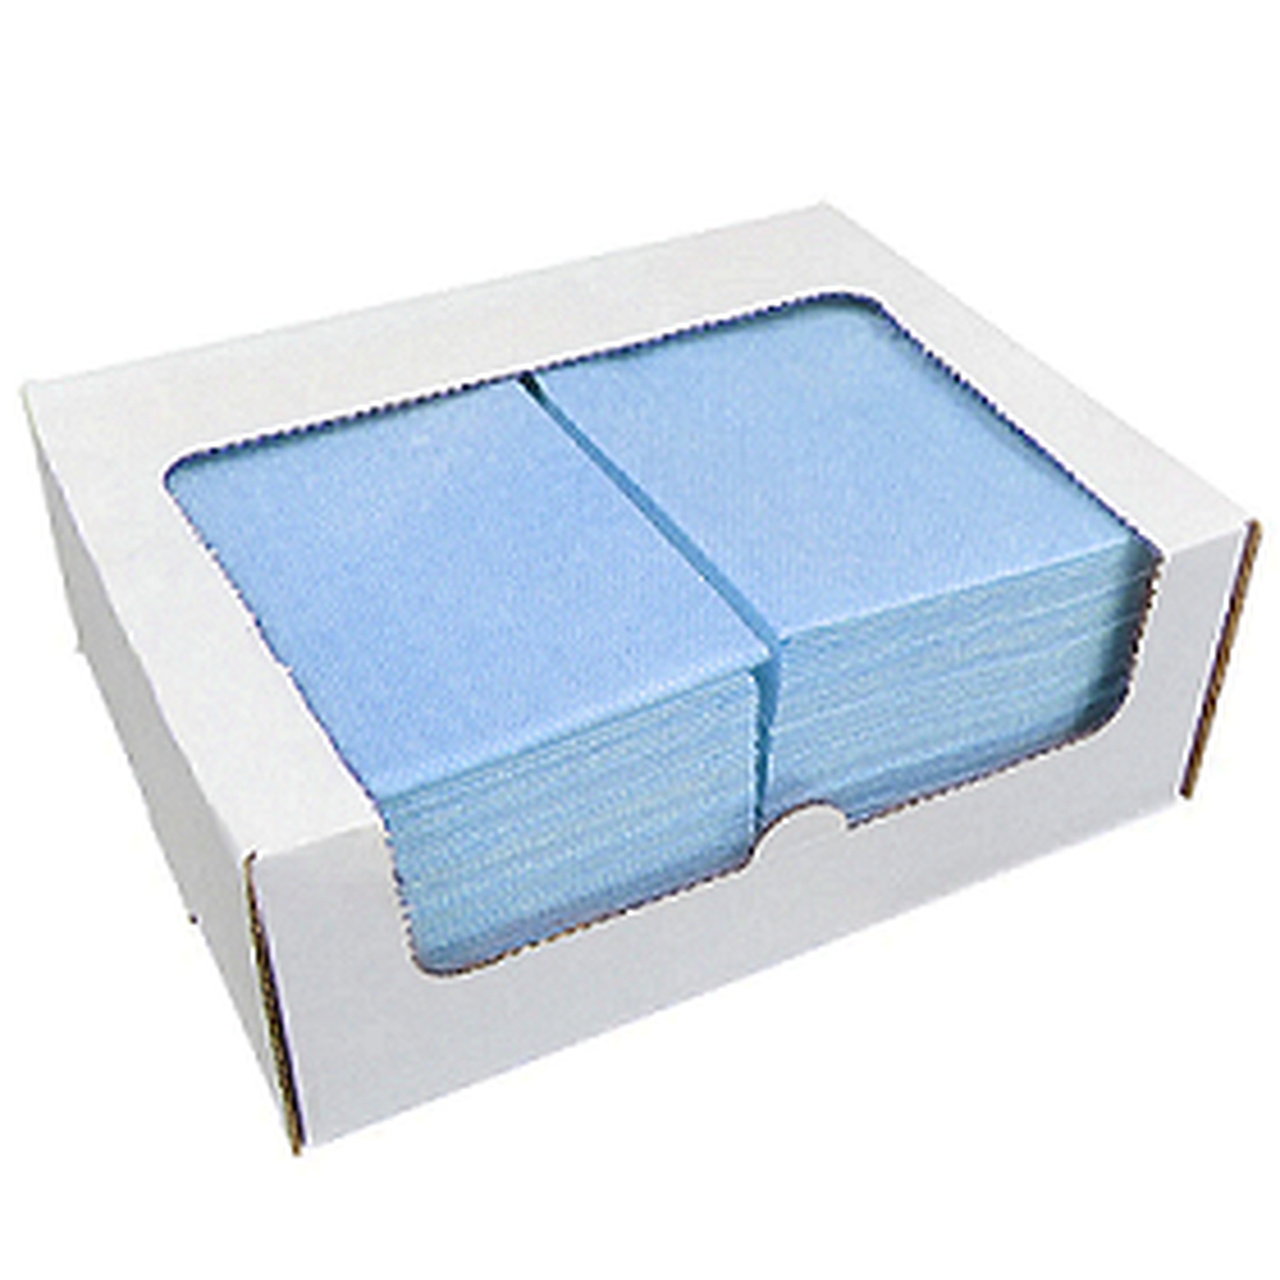 Disposable Cleaning Wipes